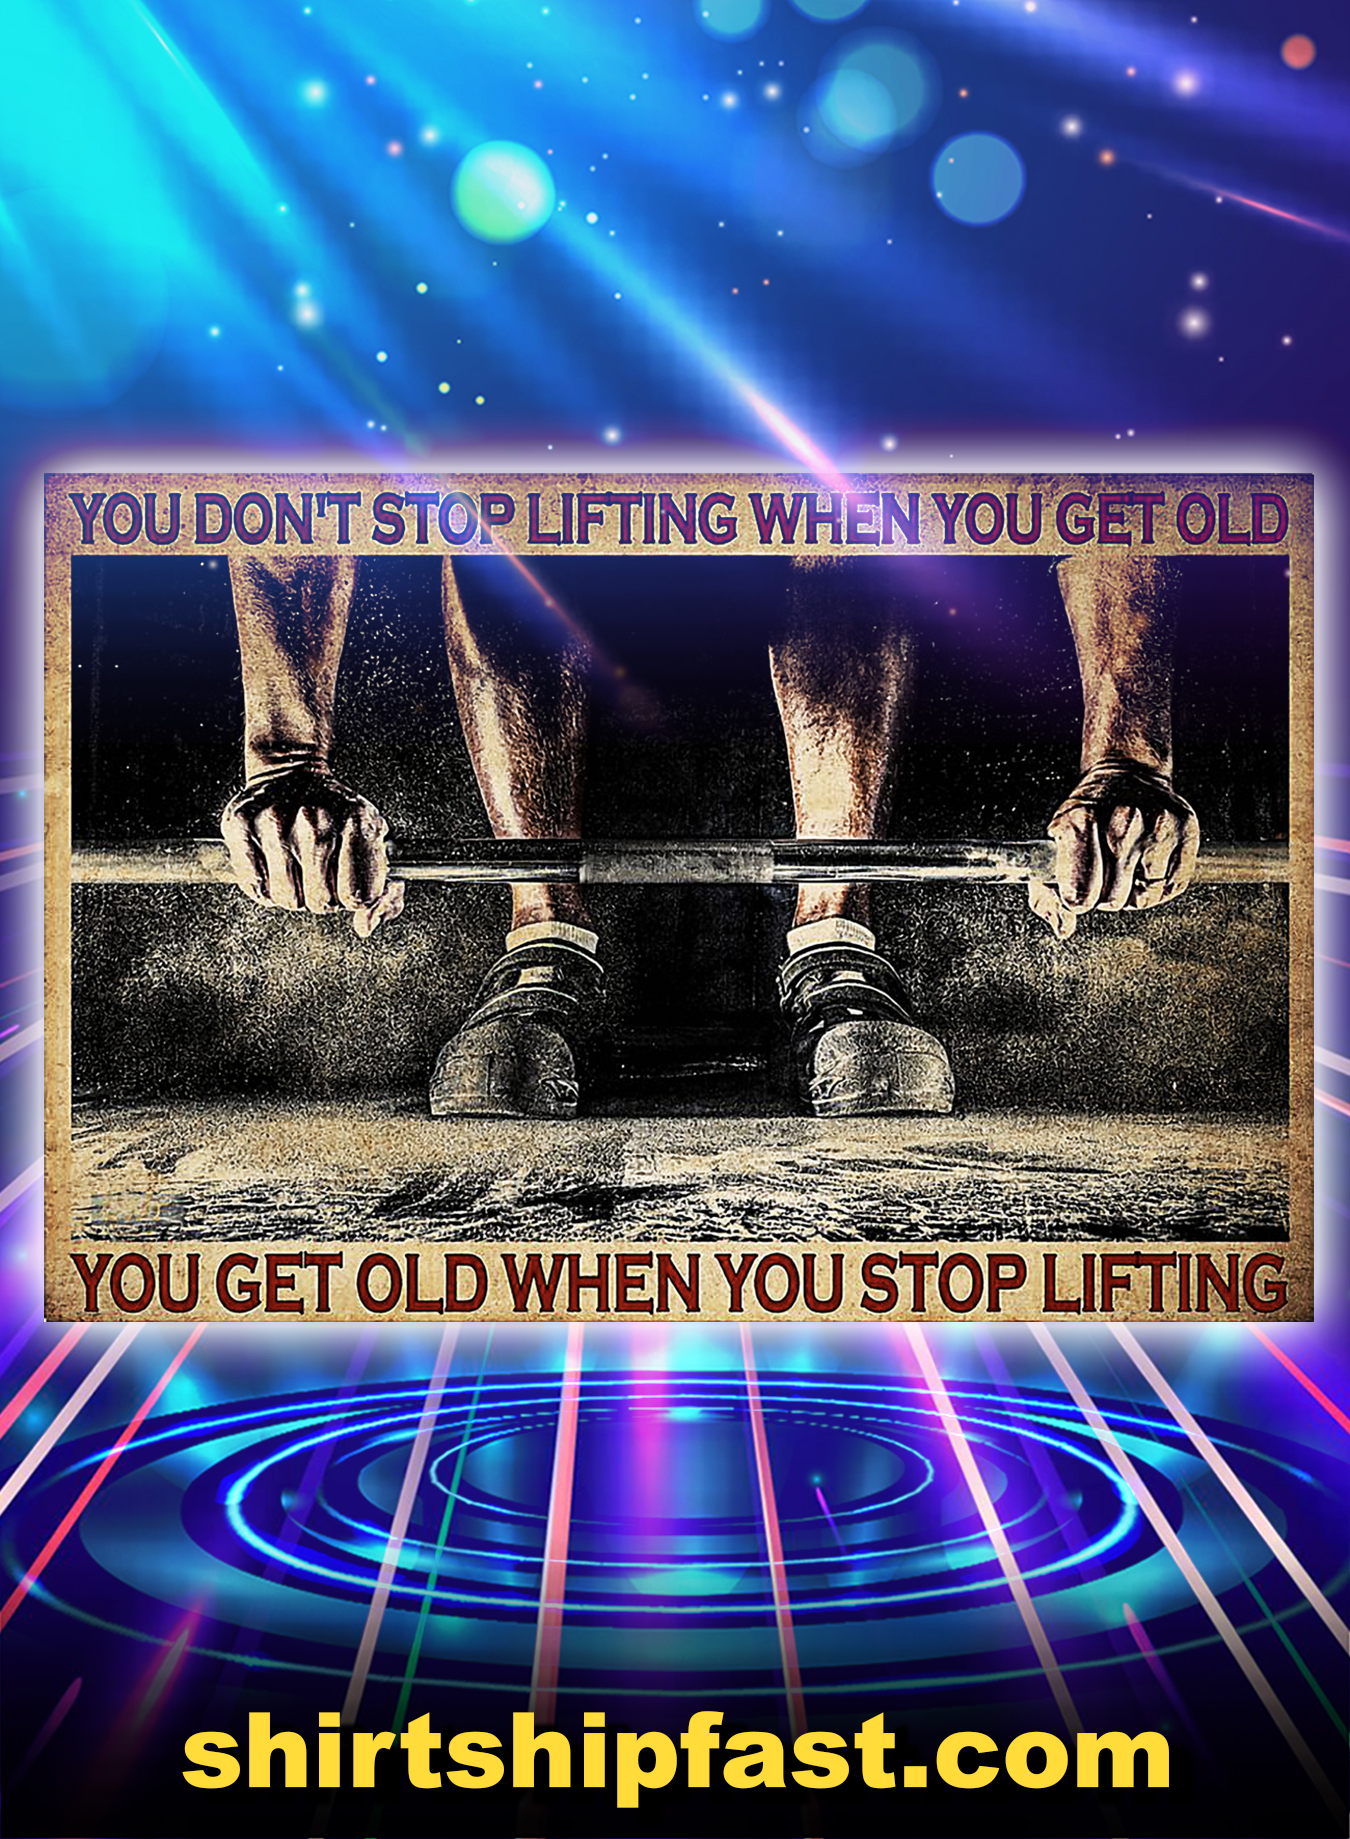 You don't stop lifting when you get old Fitness poster - A3